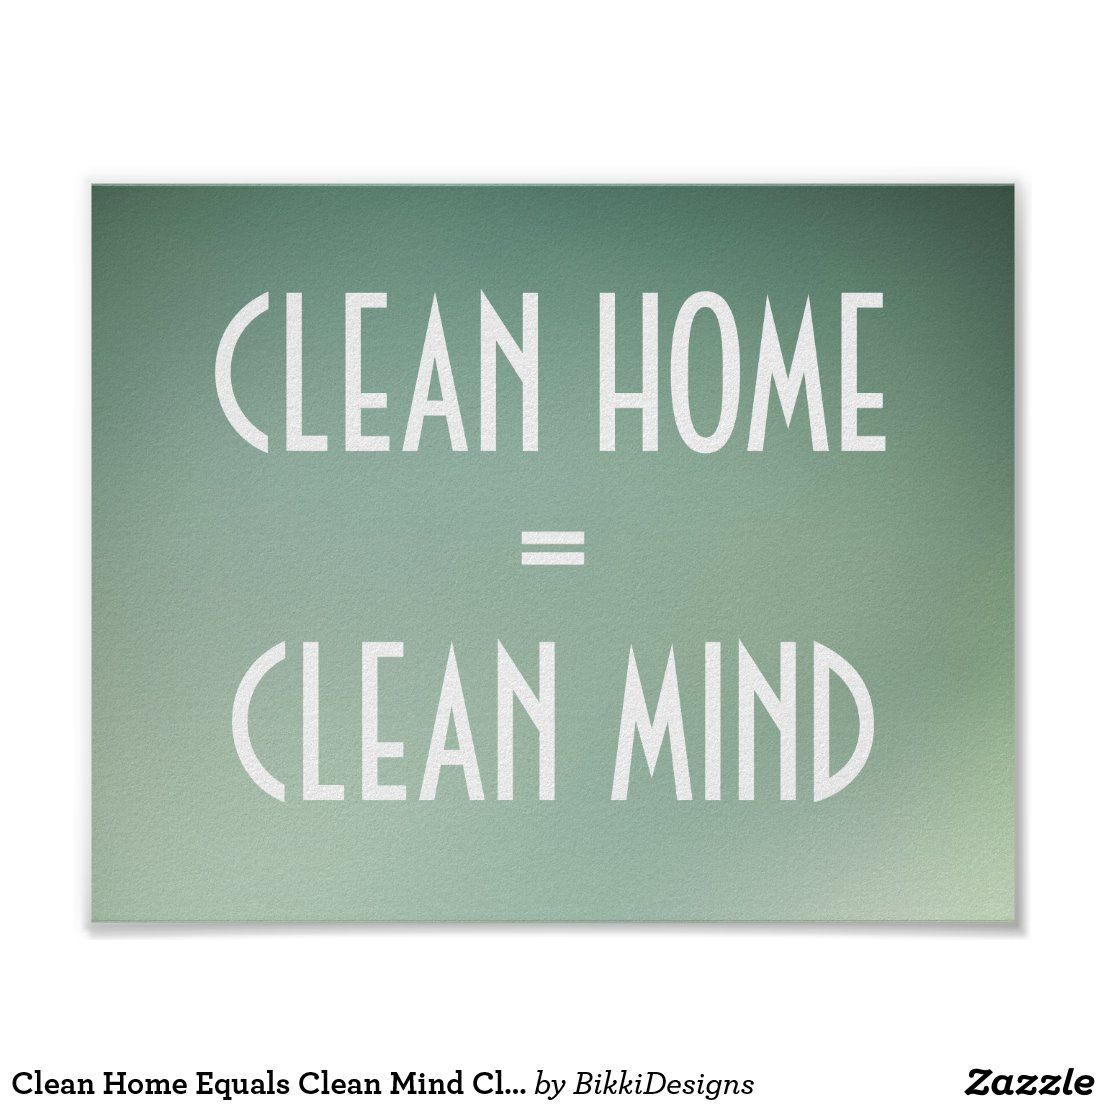 Clean Home Equals Clean Mind Cleanliness Poster Zazzle Com Cleaning Quotes Funny Cleanliness Quotes Cleaning Quotes